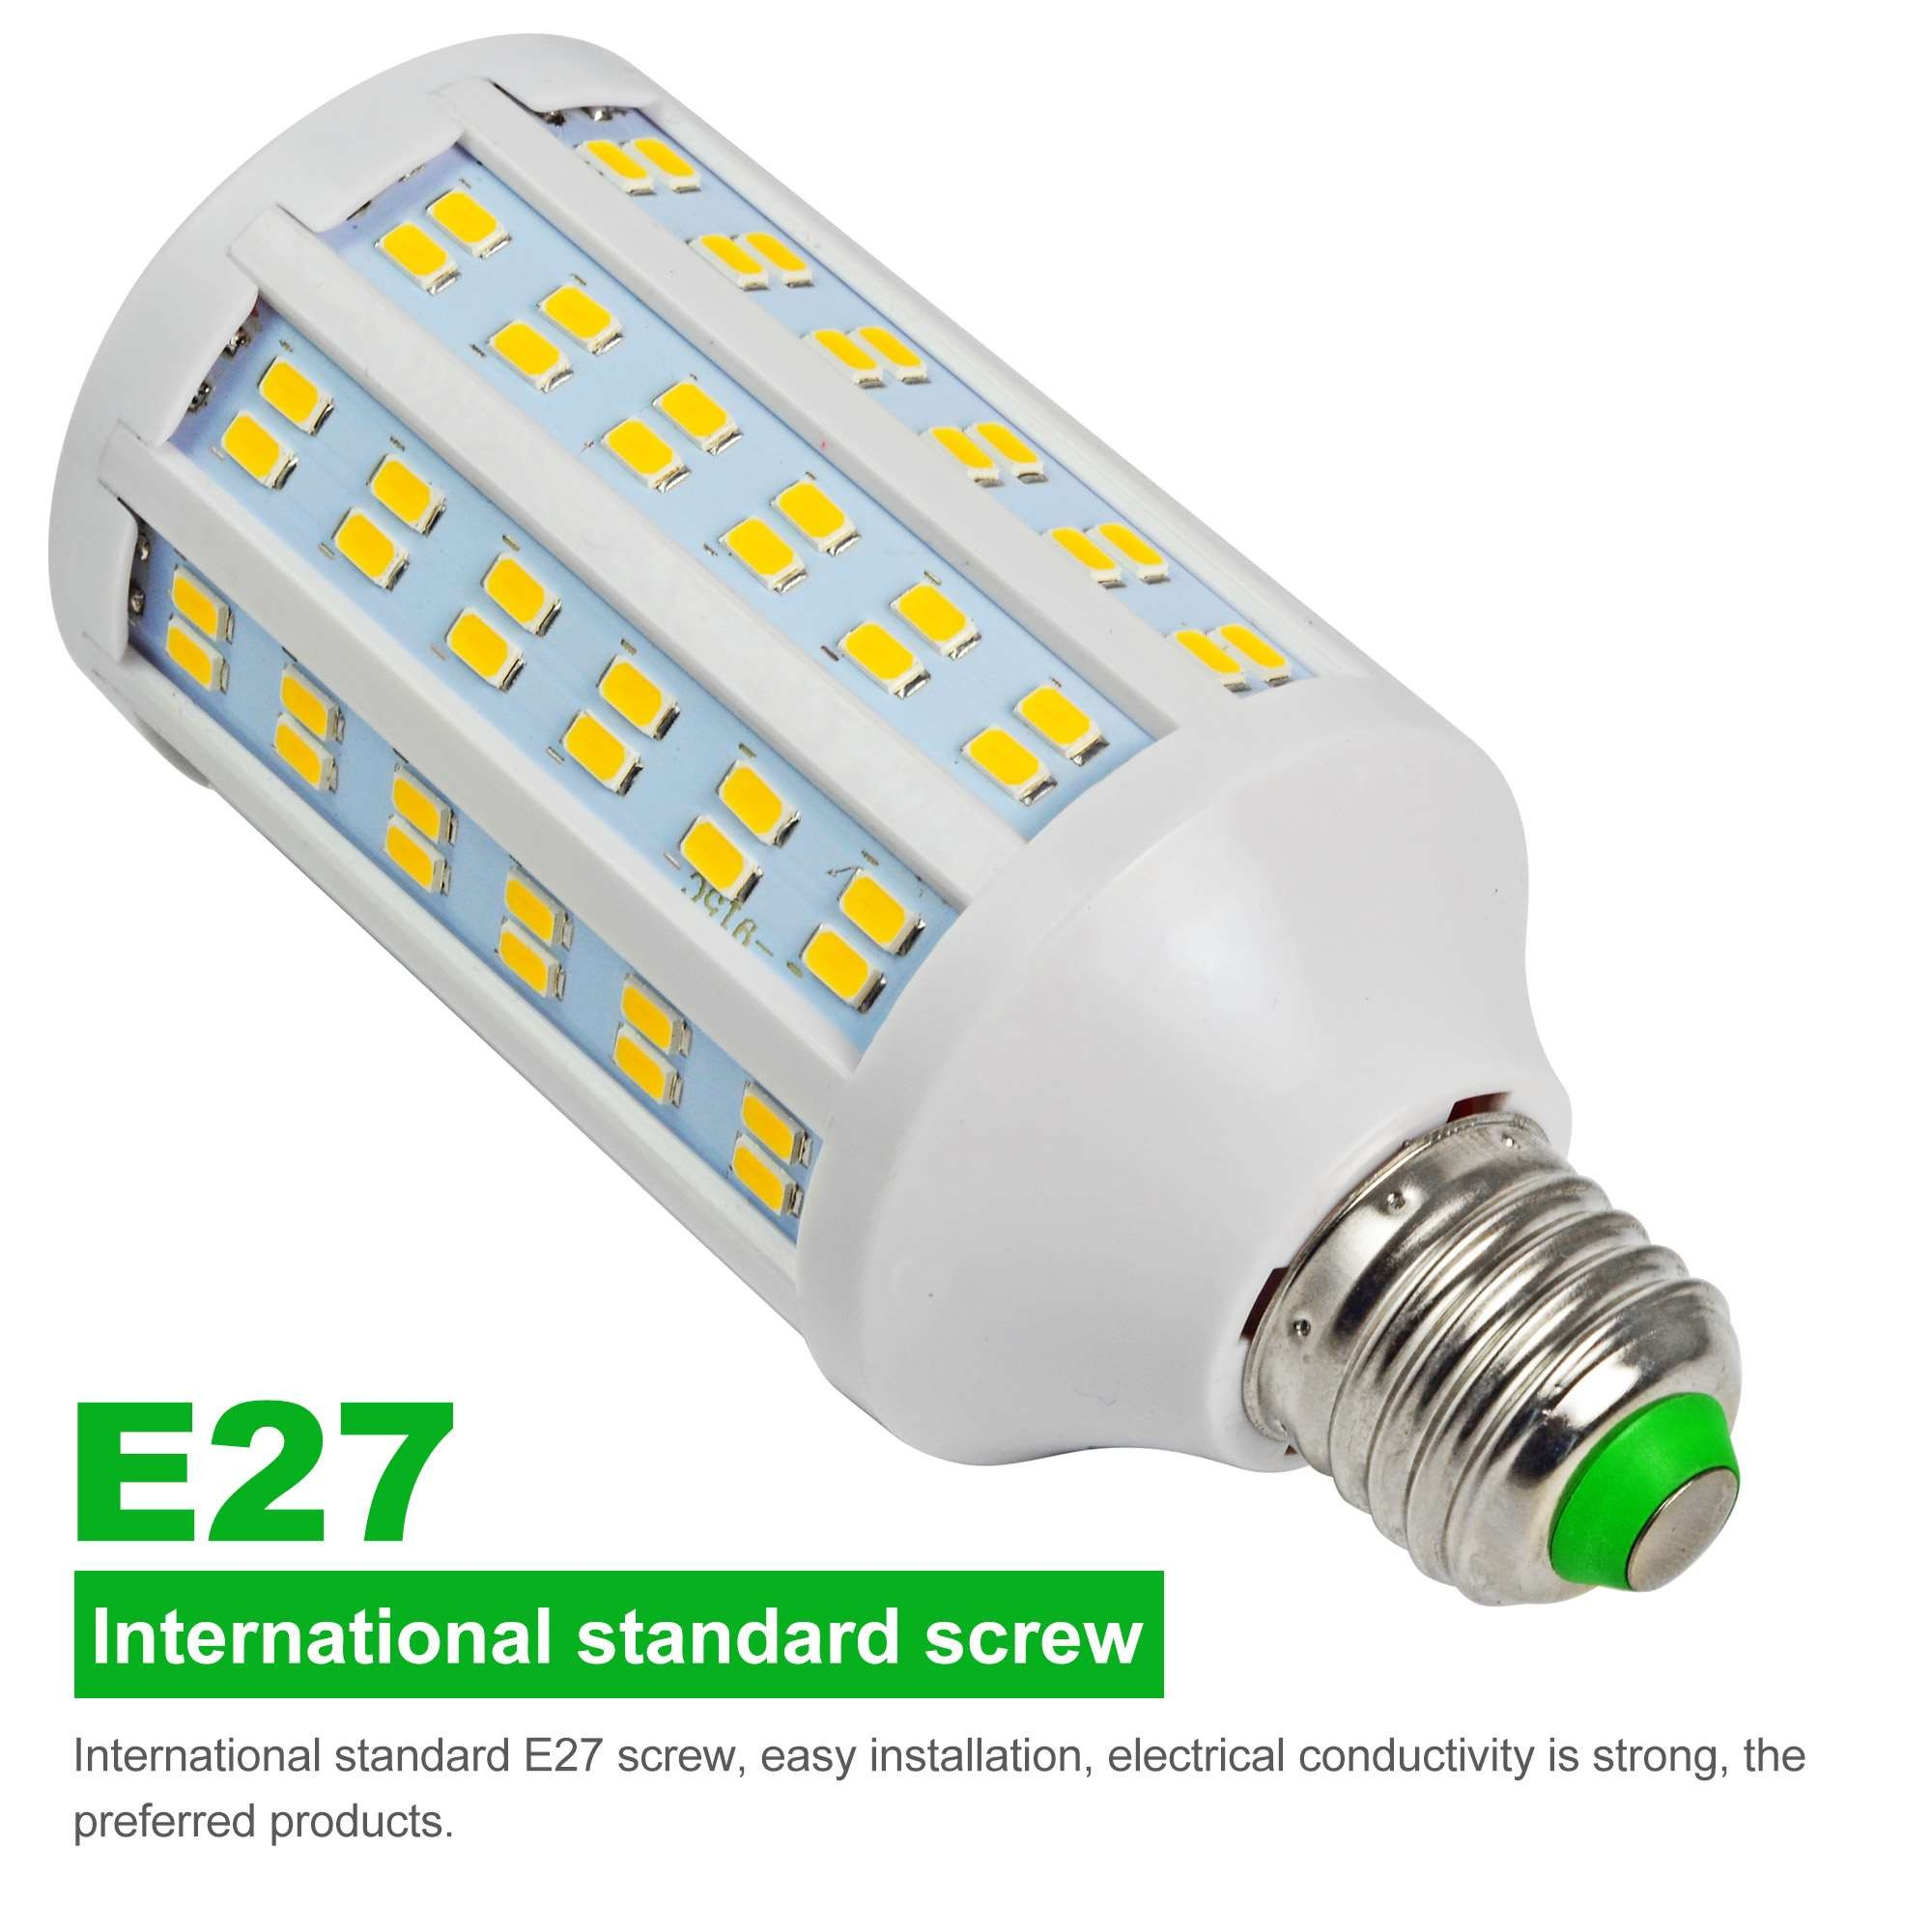 20w Smd Led 12v: MENGS® E27 20W LED Dimmable Corn Light 144x